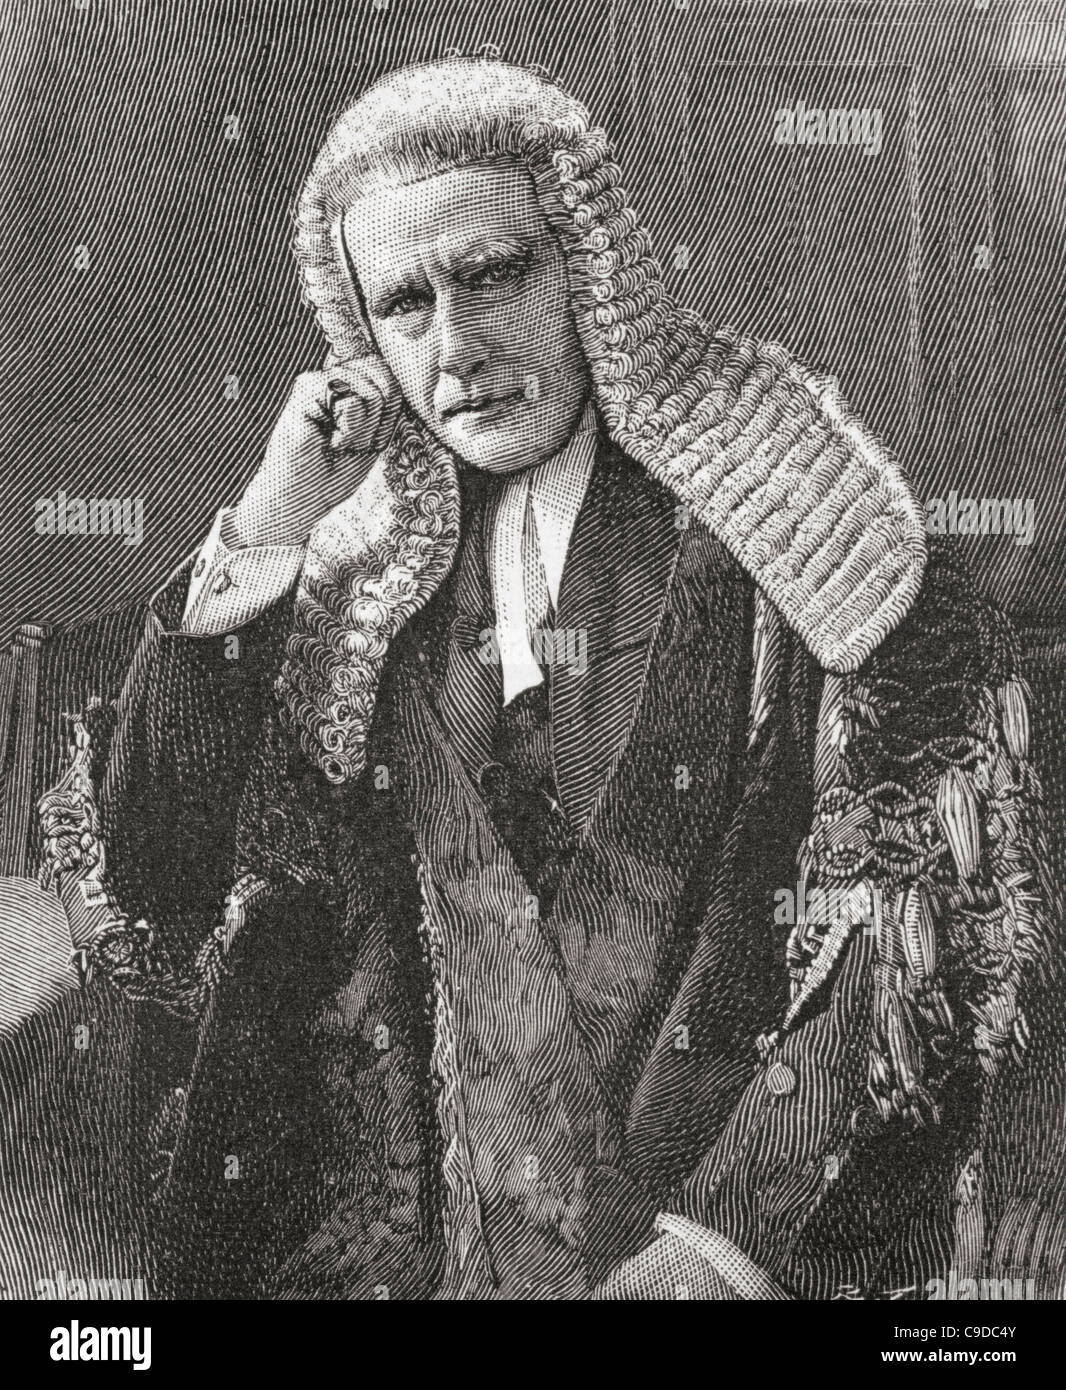 Horace Davey, Baron Davey QC, 1833 – 1907. English judge and Liberal politician. - Stock Image